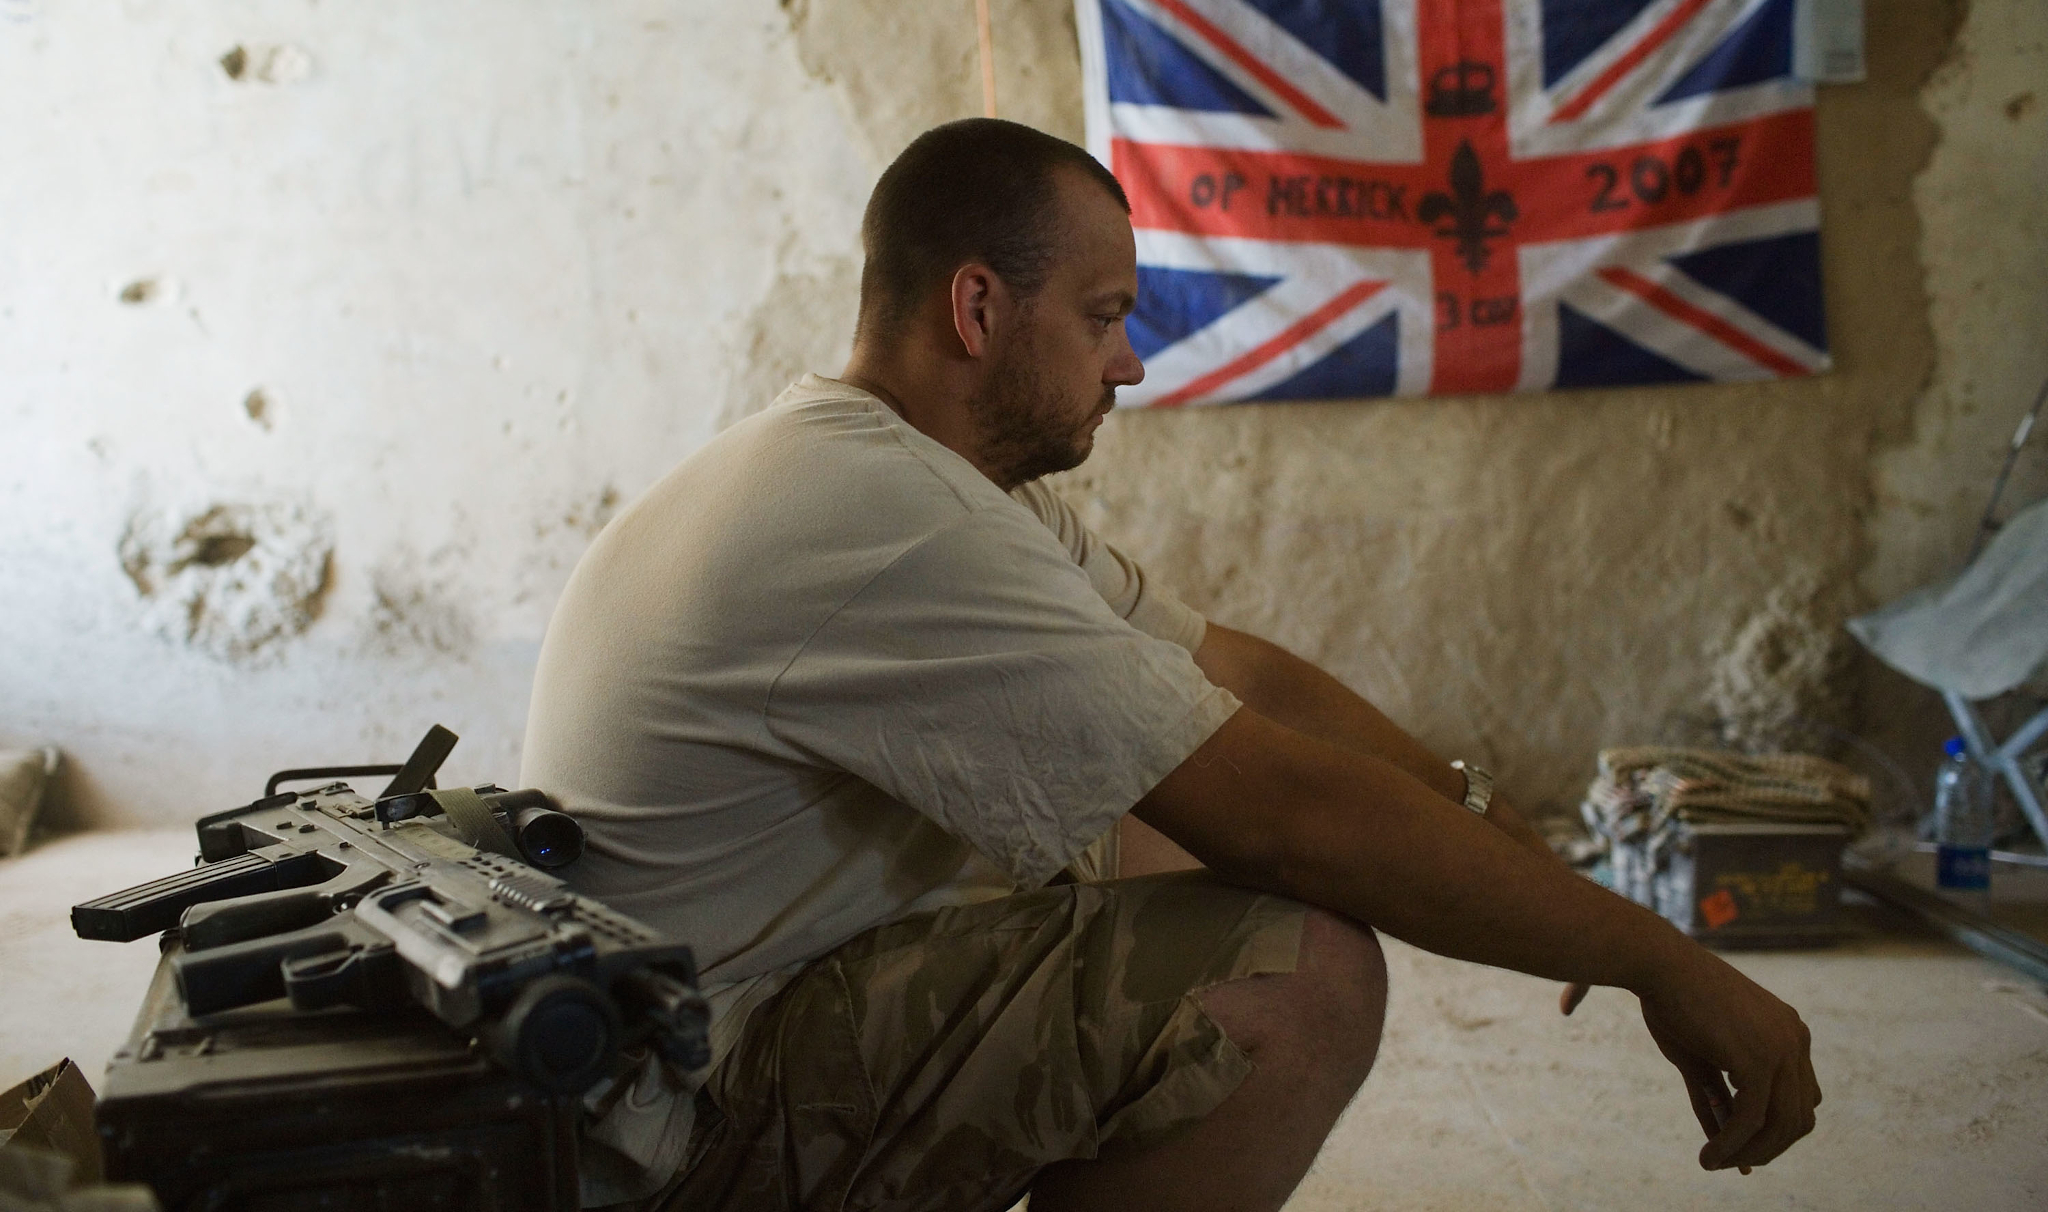 A British soldier rests at a base in Helmand, Afghanistan, 2007 (Photo: Marco Di Lauro / Getty)